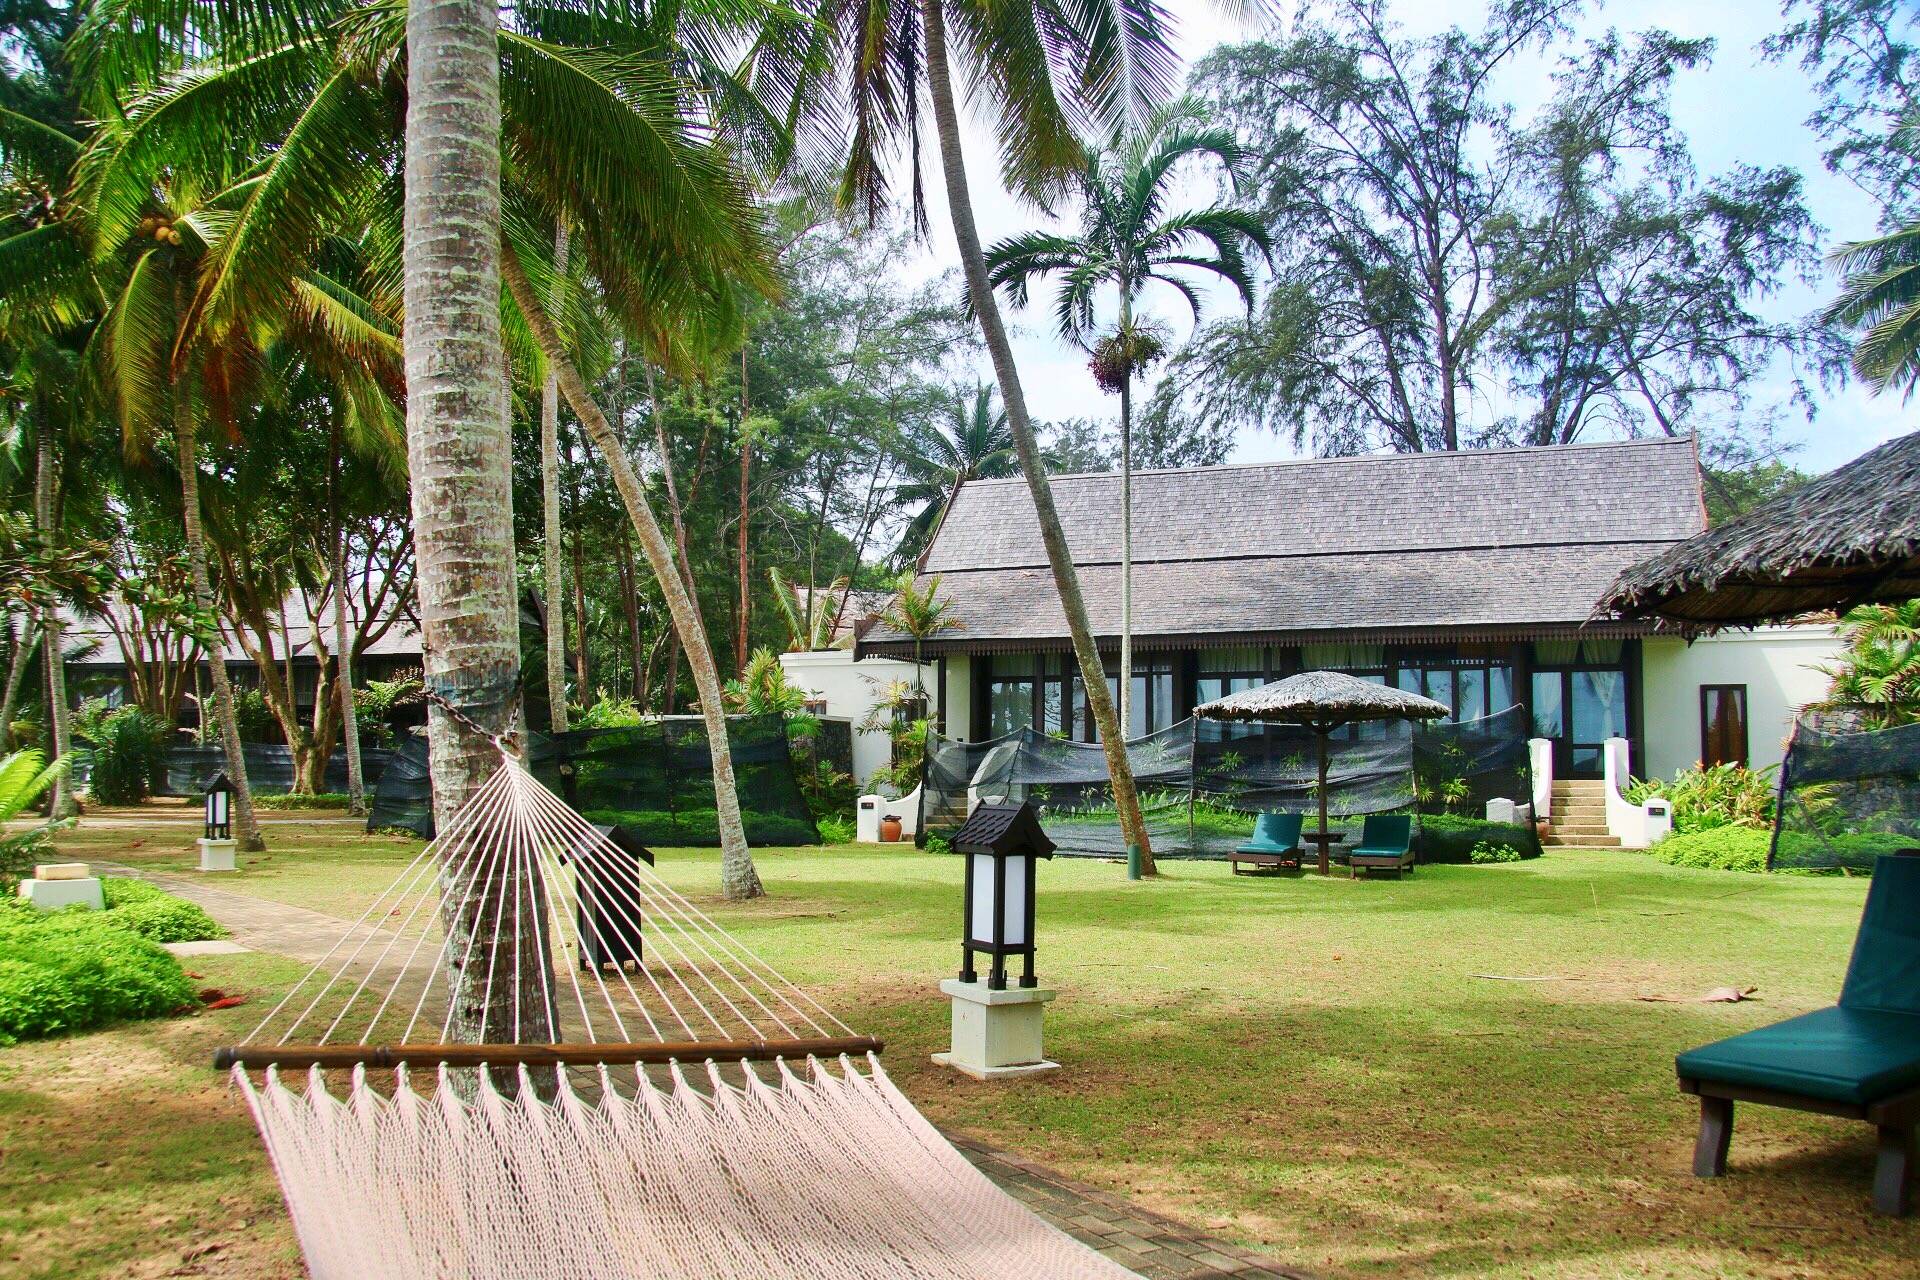 pilotmadeleine | Our Stay at Tanjong Jara Resort in Malaysia ...